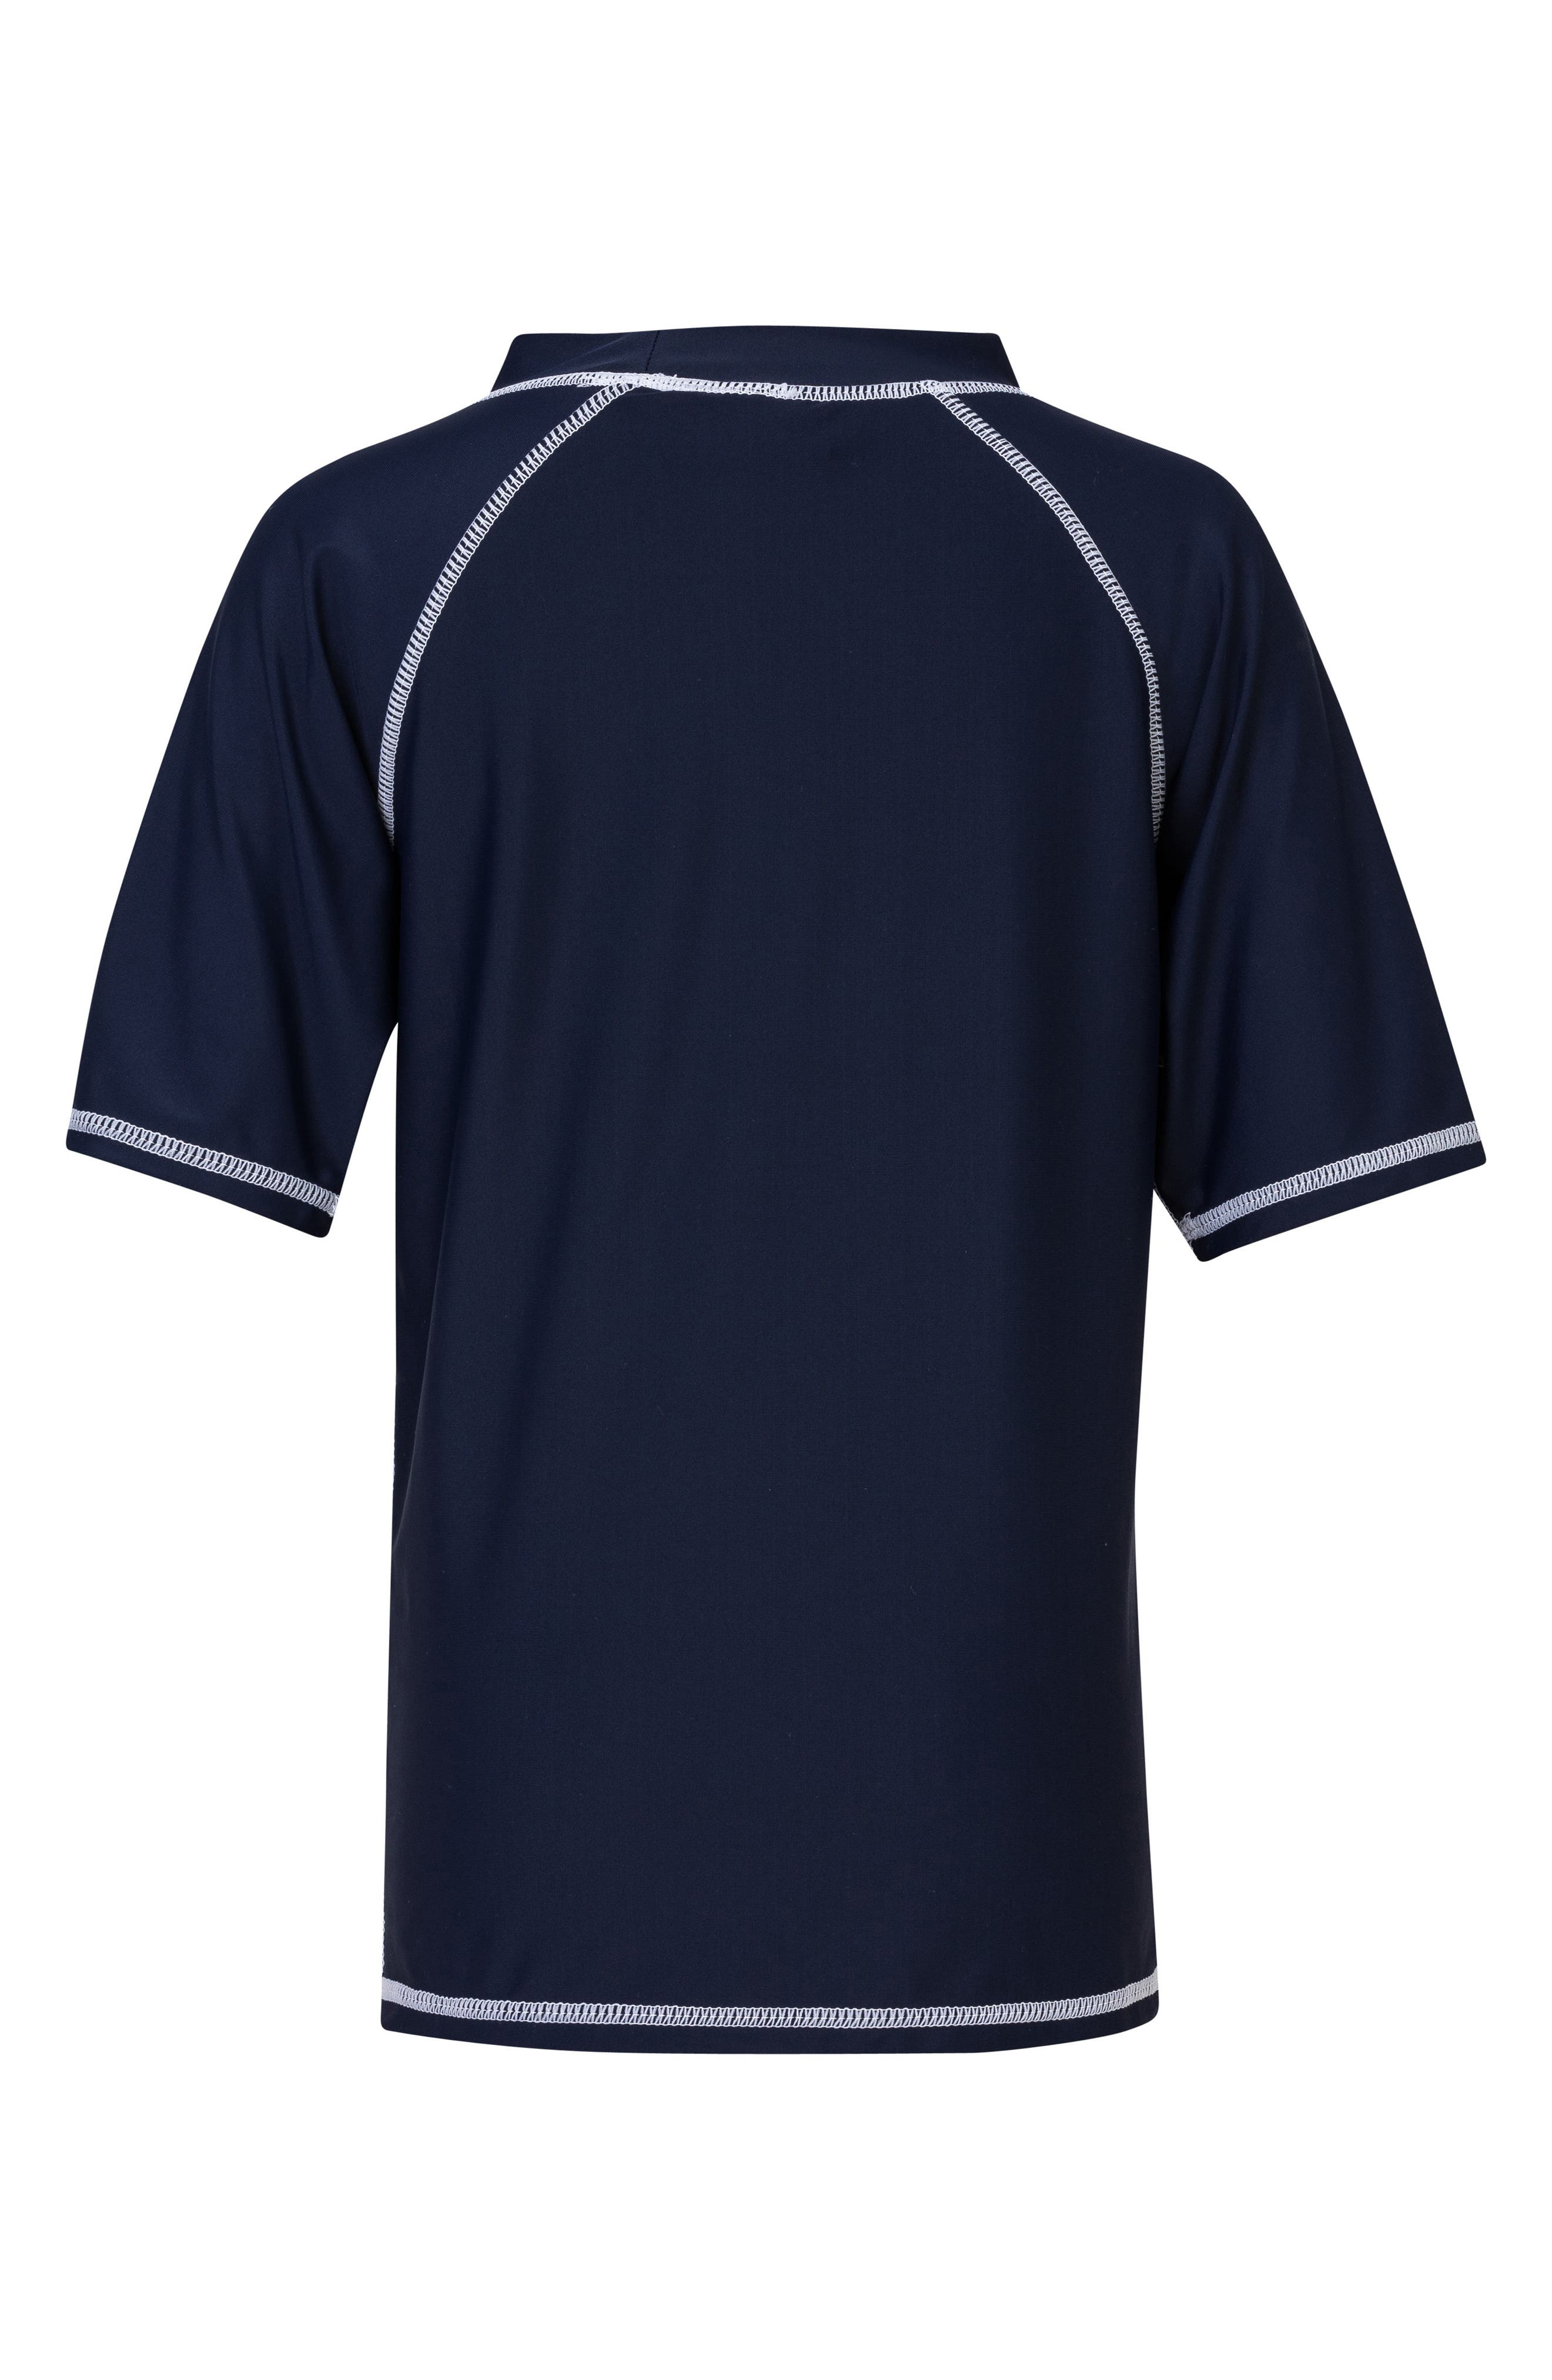 Raglan Short Sleeve Rashguard,                             Alternate thumbnail 2, color,                             NAVY